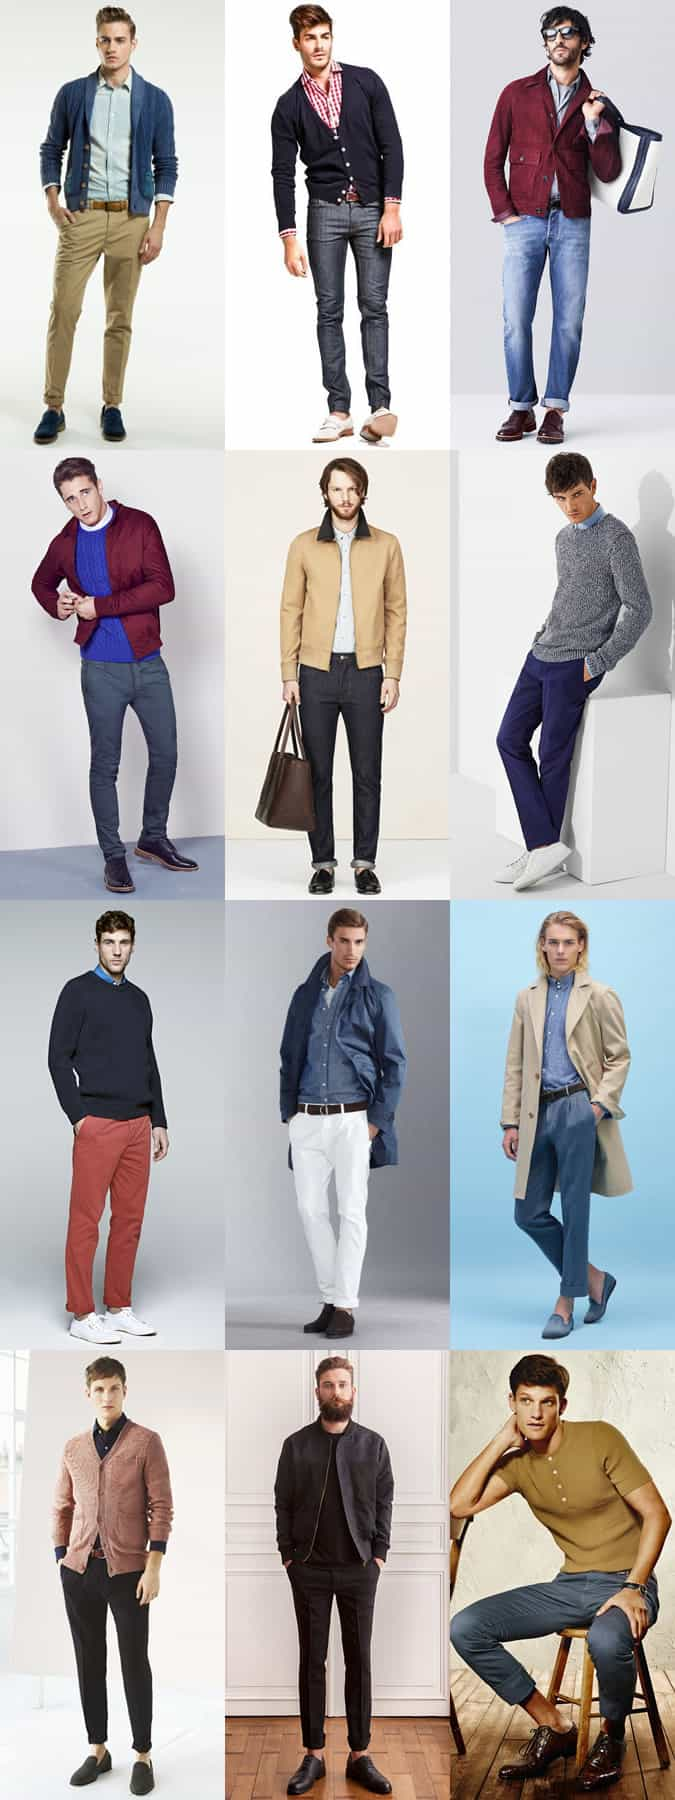 Men's Dress Down Friday Outfit Examples - Using Fabrics, Textures and Colours To Individualise Your Look